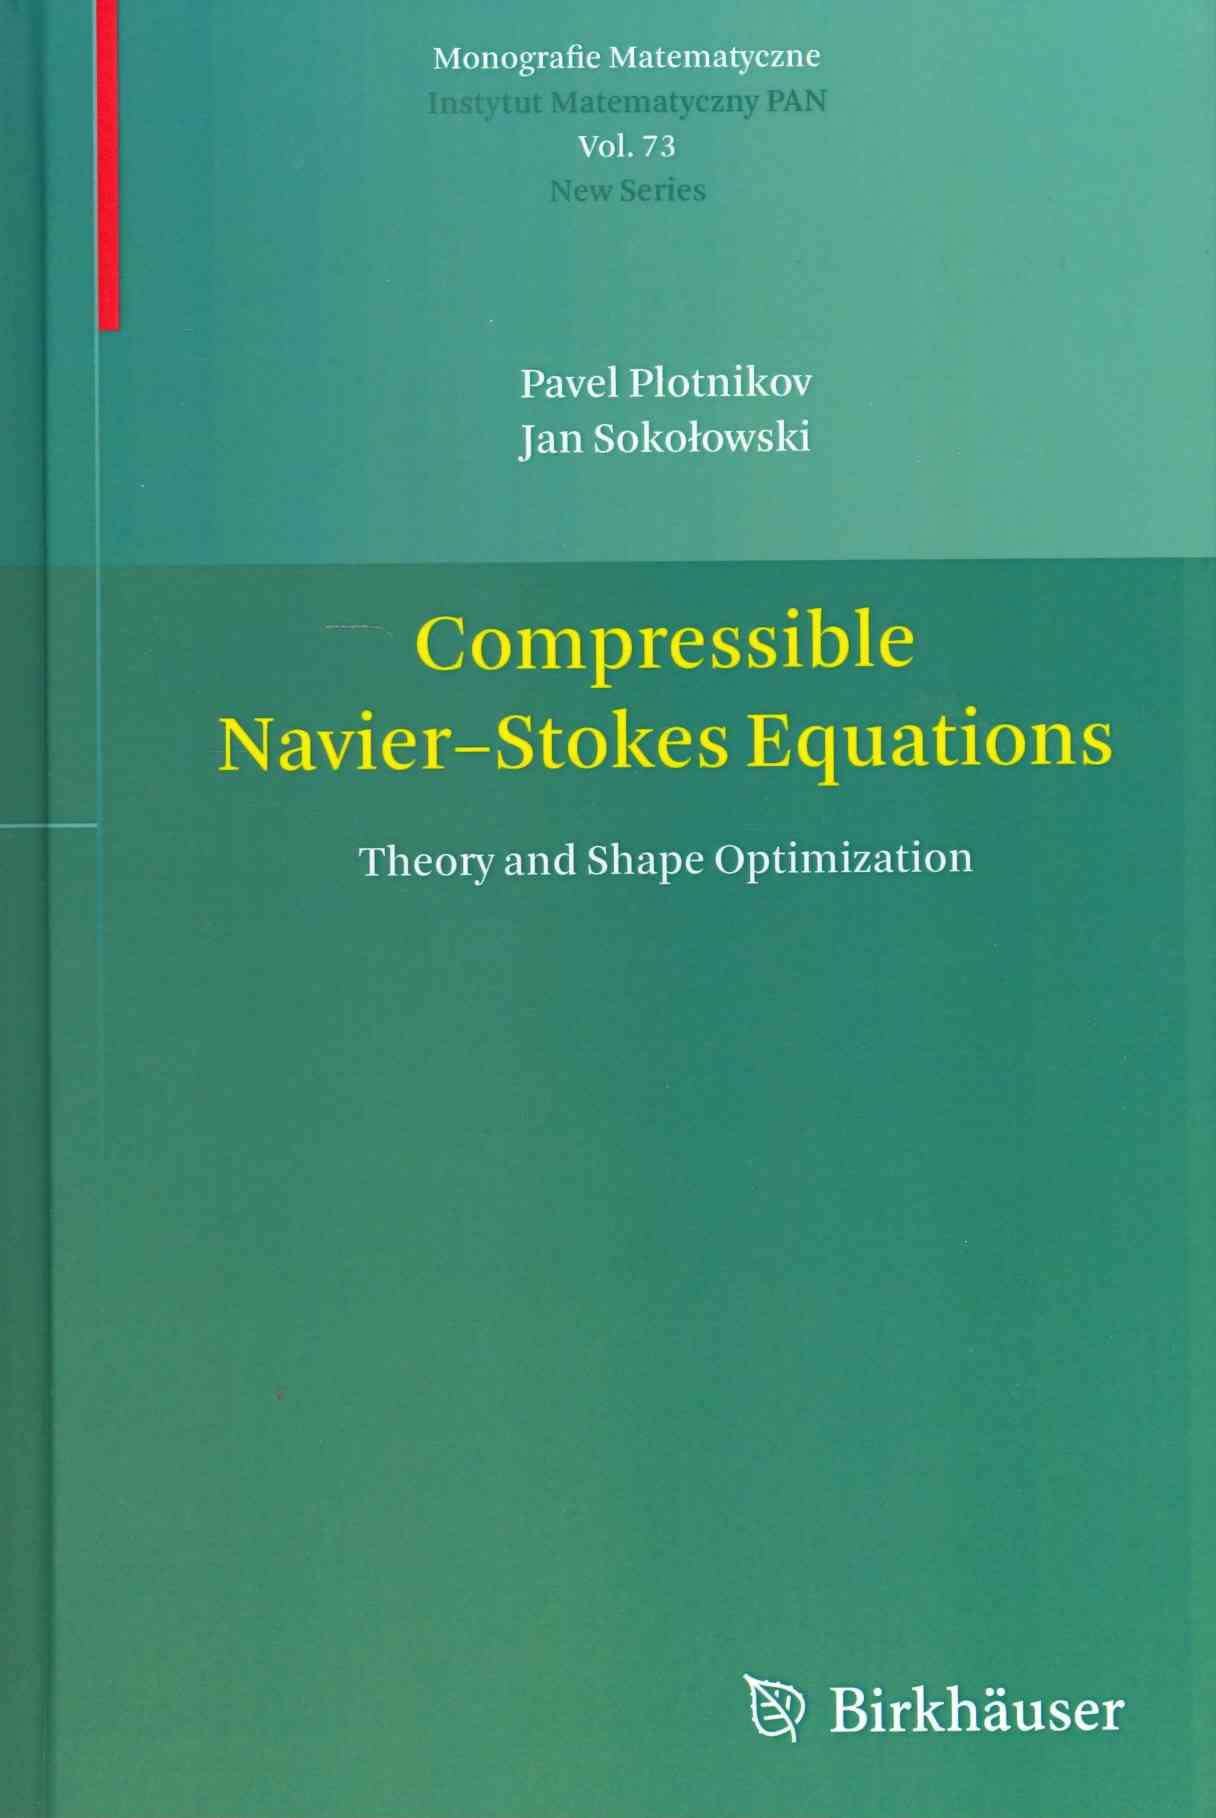 Compressible Navier-Stokes Equations By Plotnikov, Pavel/ Sokolowski, Jan